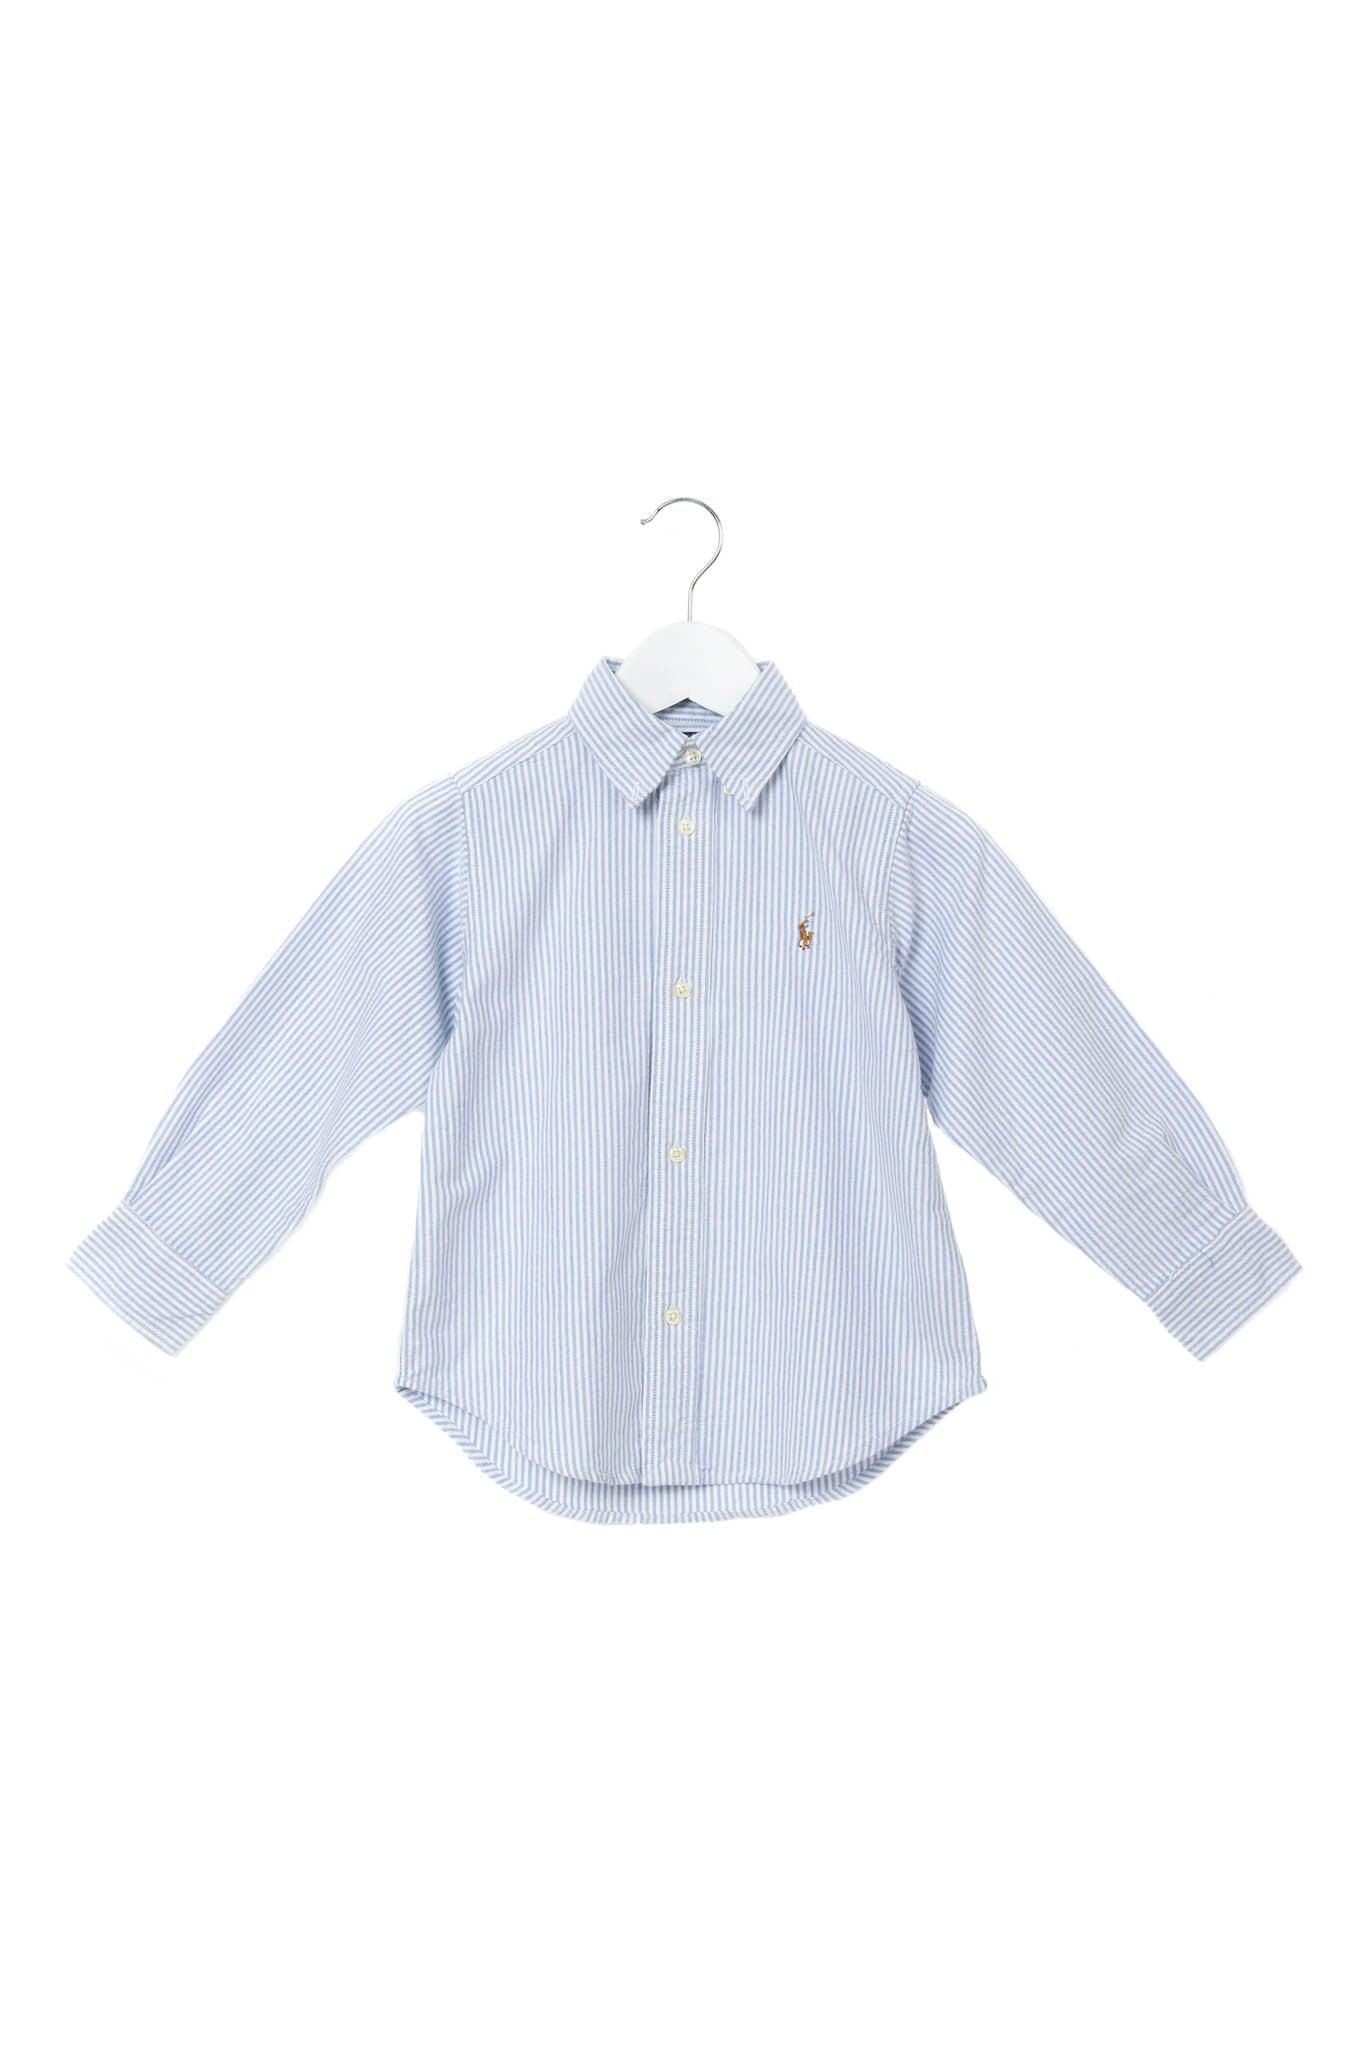 10001247 Ralph Lauren Kids~Shirt 3T at Retykle